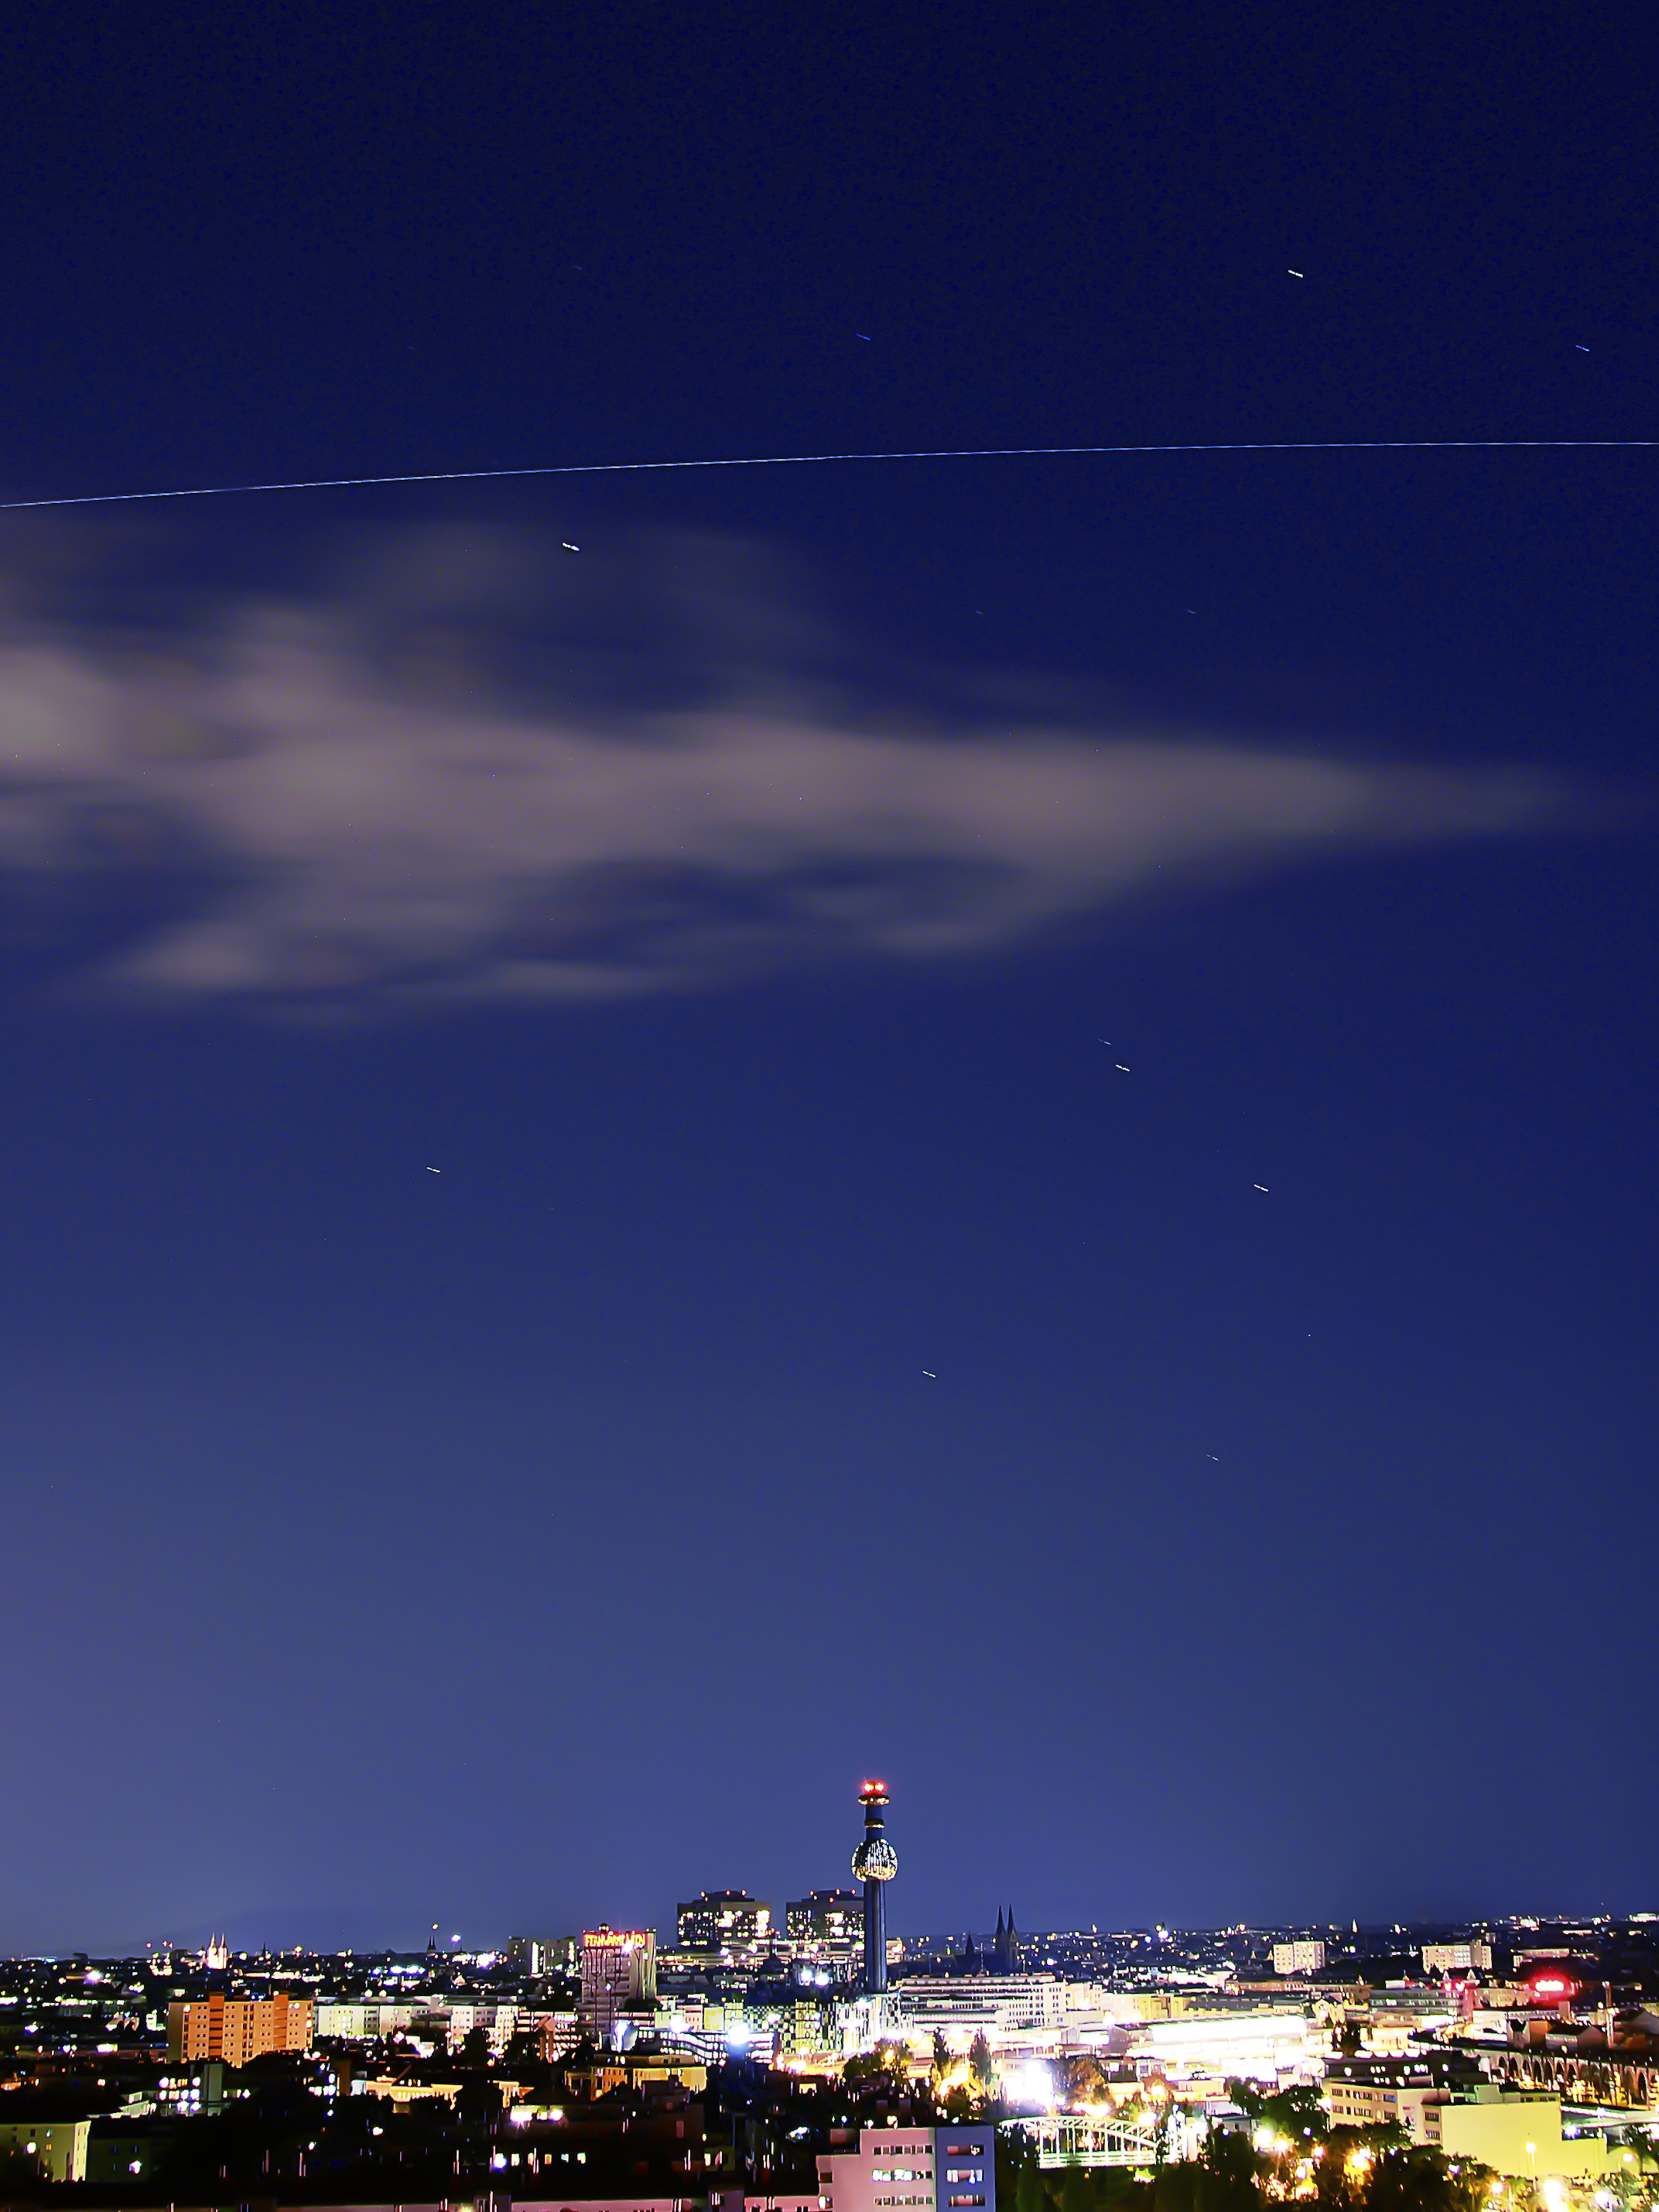 Lucky Shot! Skywatcher Captures Space Station Soaring Over Vienna